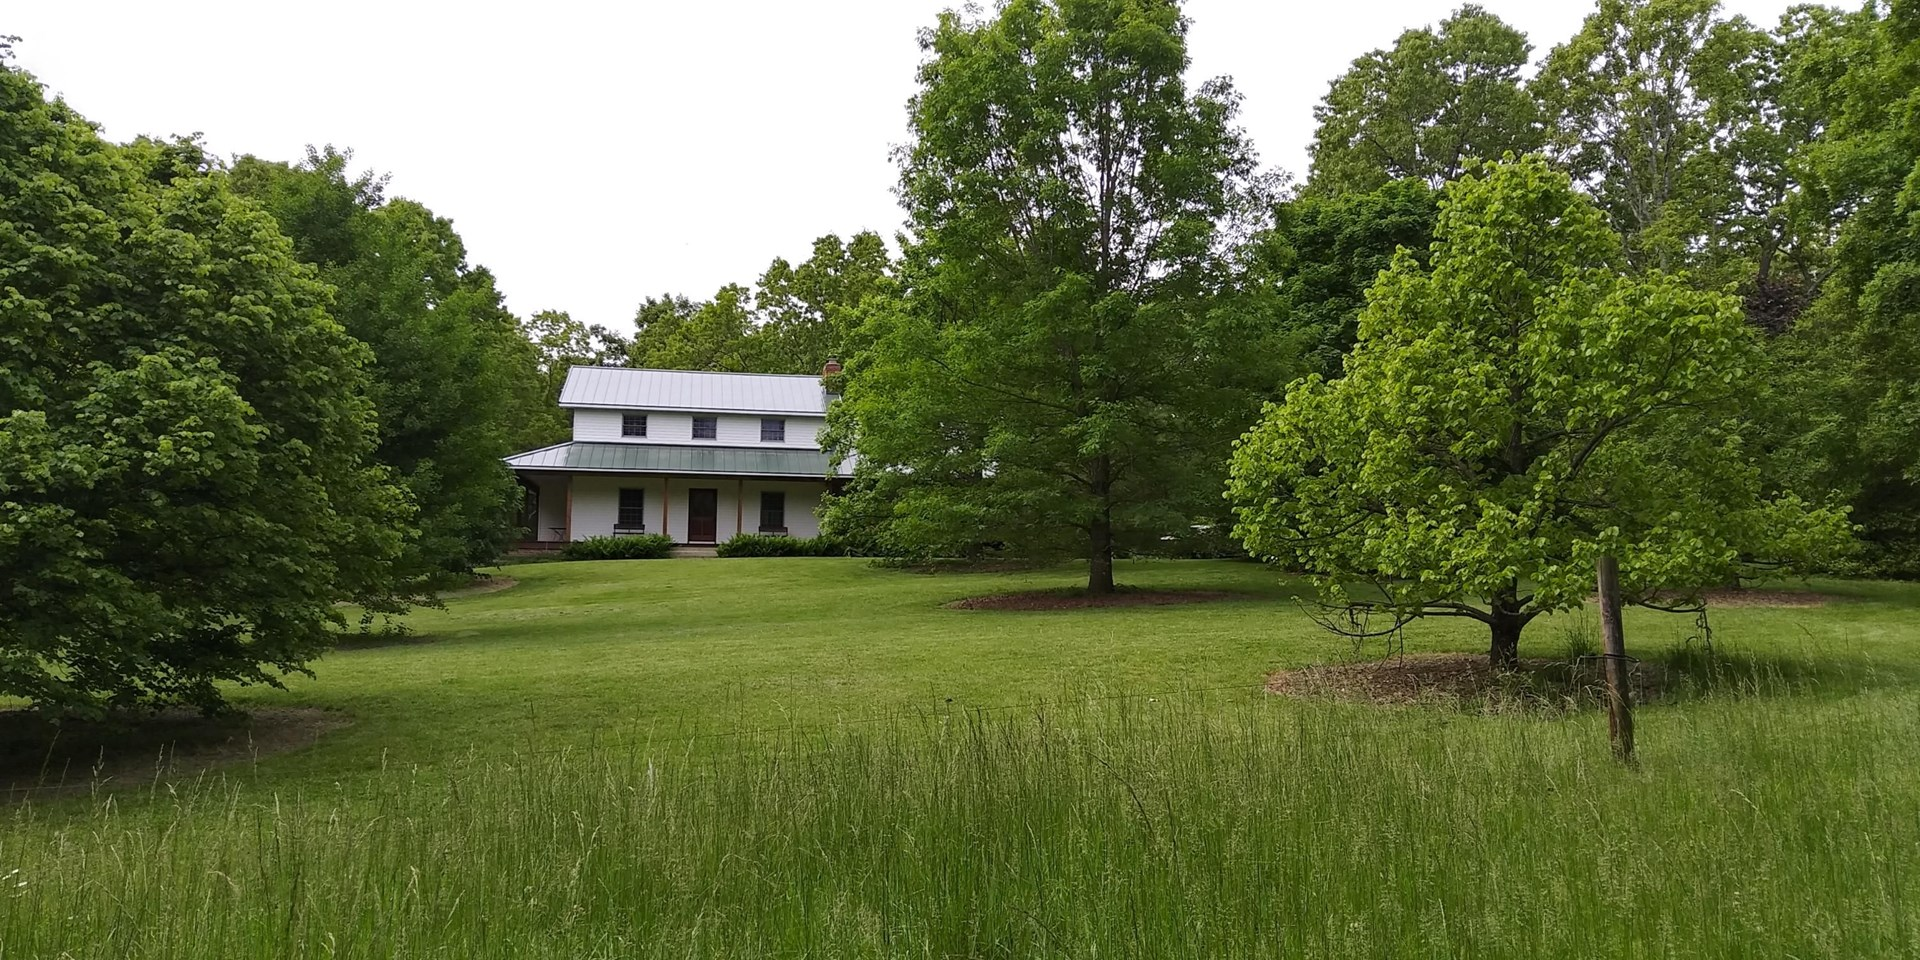 Hobby Farm for Sale in South Central Missouri Ozarks